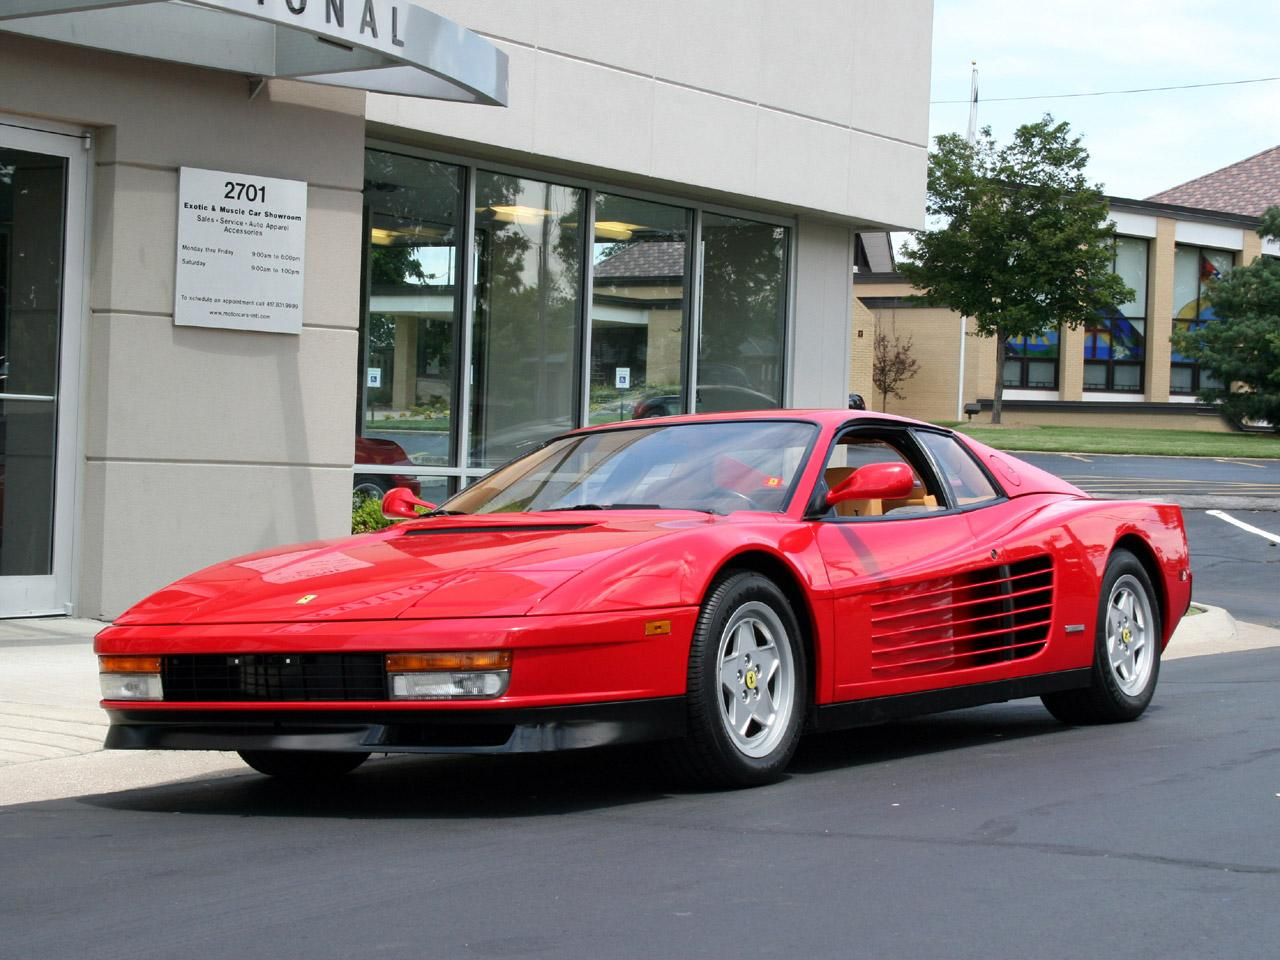 of in lauderdale sale at for htm ferrari fl coupe ft maserati used testarossa fort